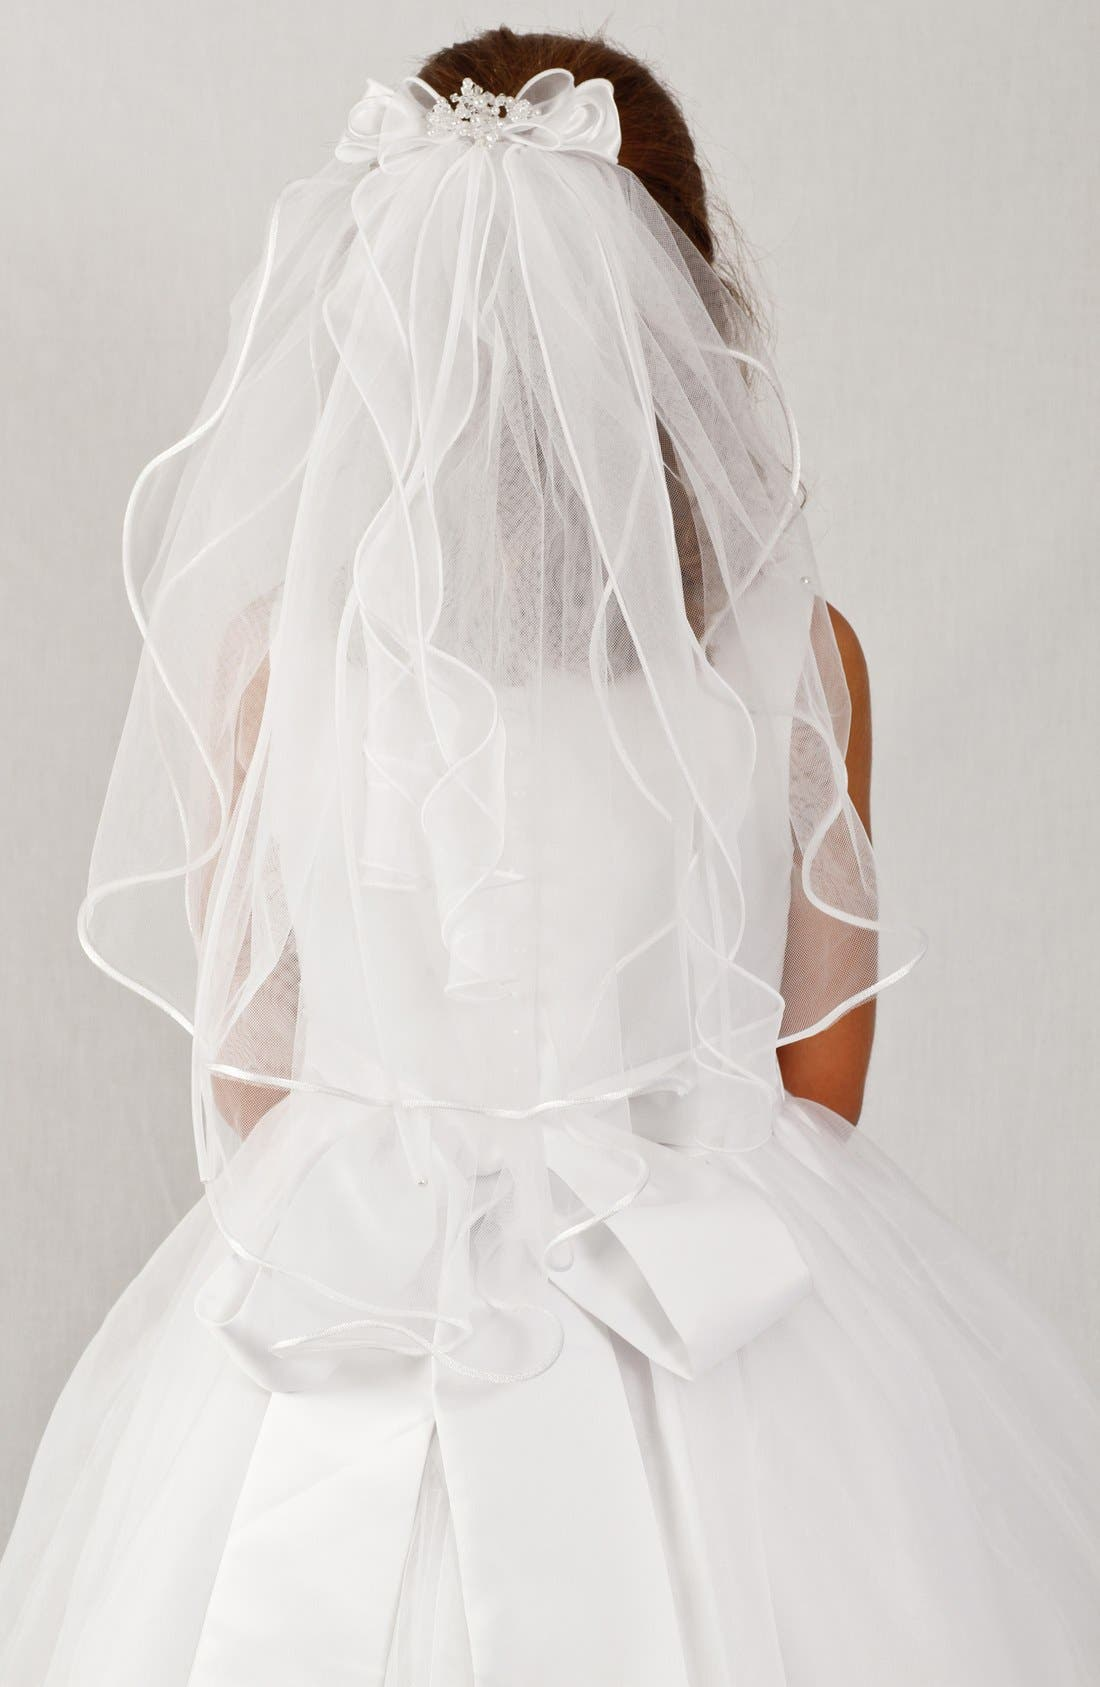 Main Image - Lauren Marie Organza Bow Veil (Girls)